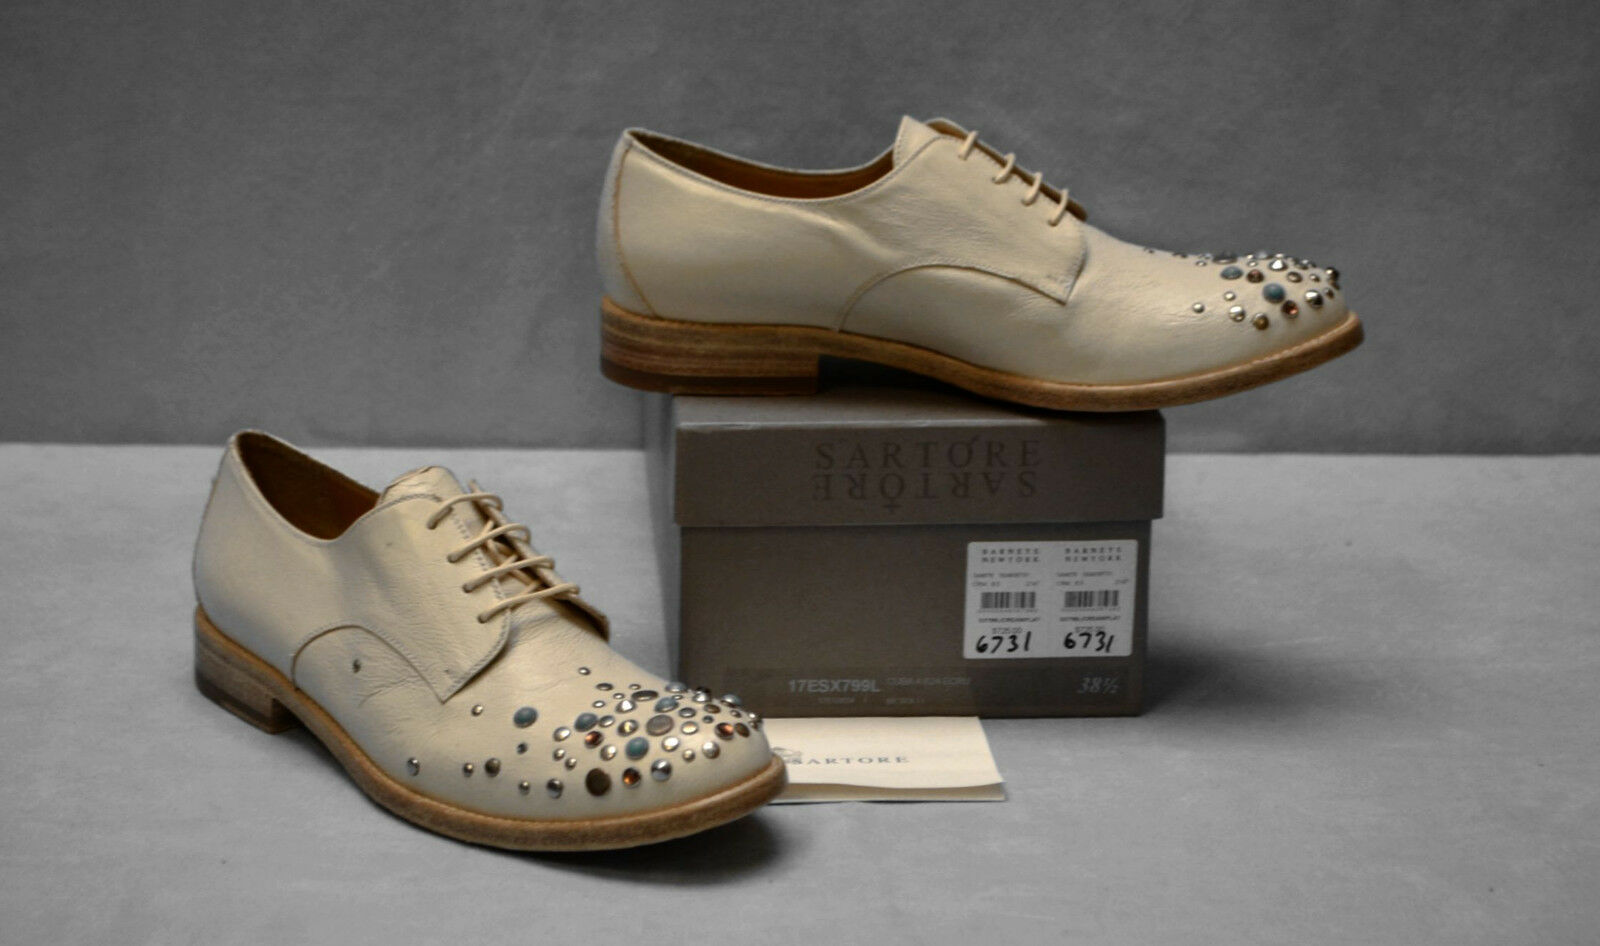 C0 NEW SARTORE Cream  Leder Faux schuhes Turquoise Studded Oxfords schuhes Faux Size 38.5 $725 f2ff6e